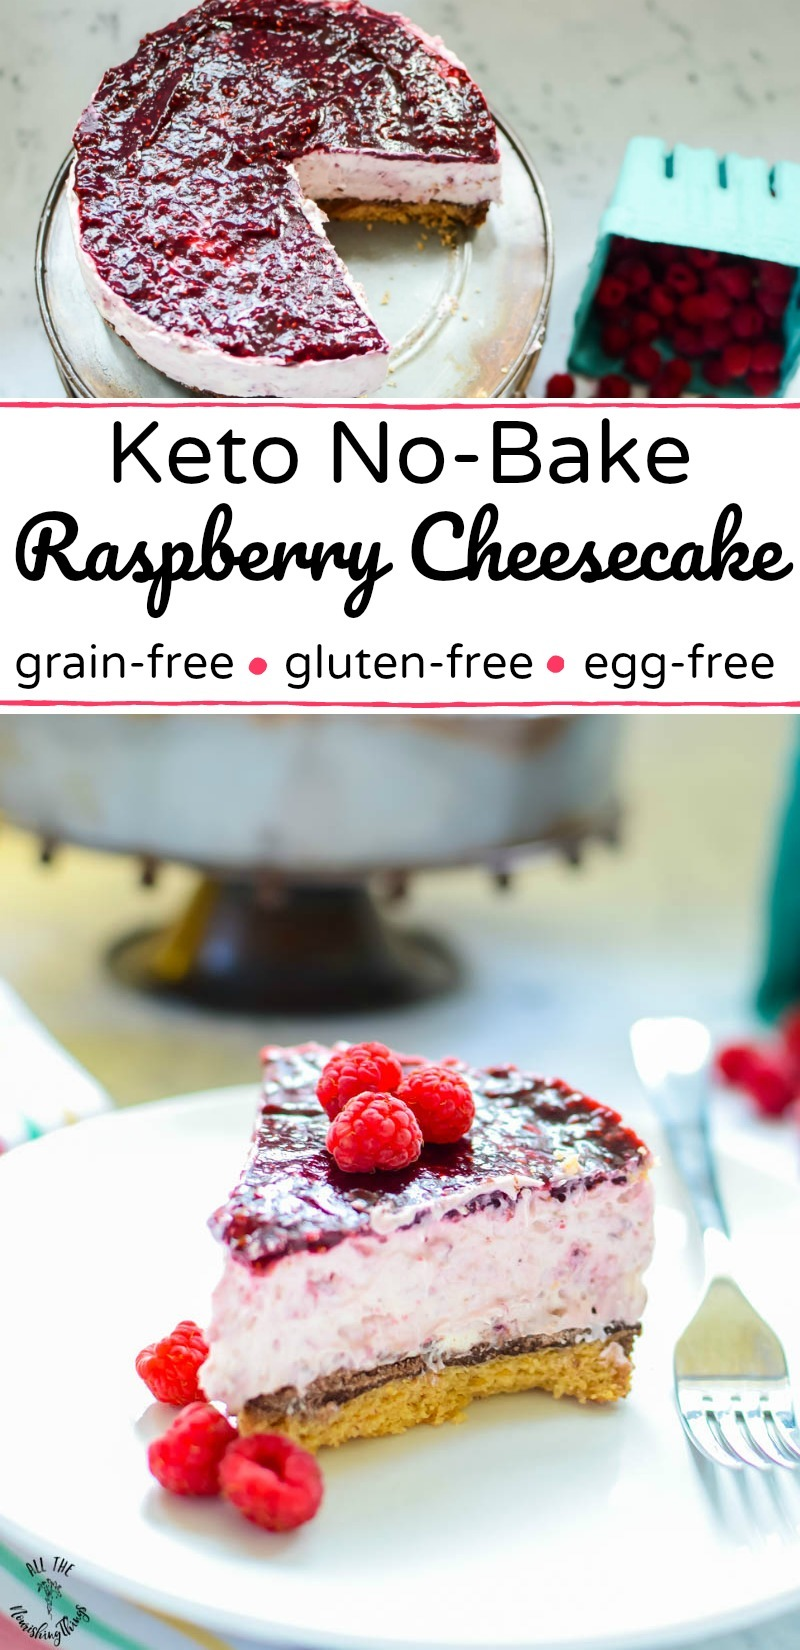 collage of 2 images of keto no-bake raspberry cheesecake with text overlay